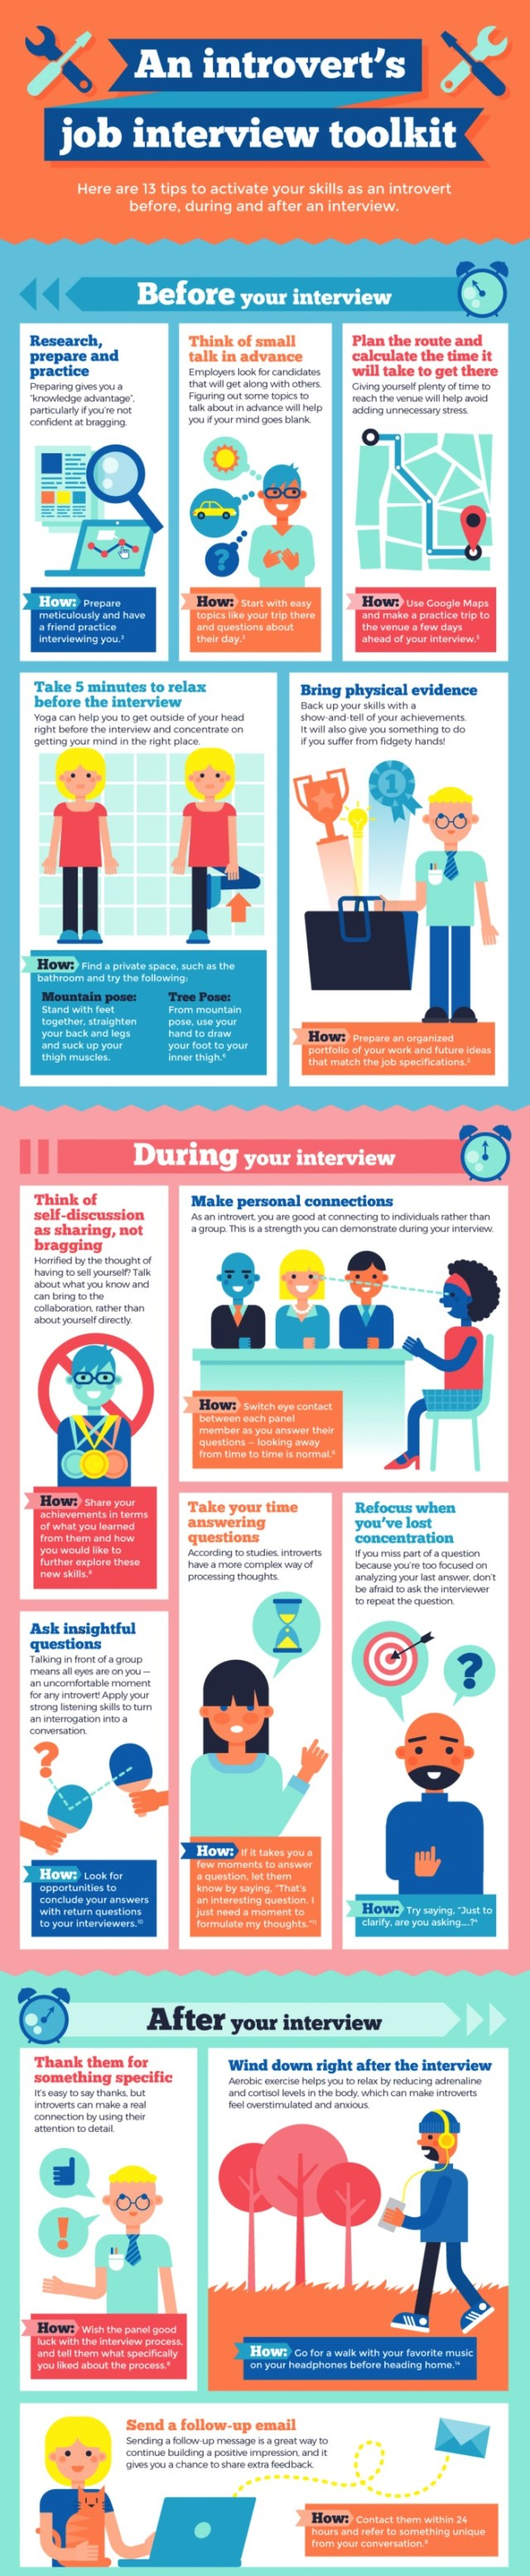 Introverts Guide to Job Interview infographic